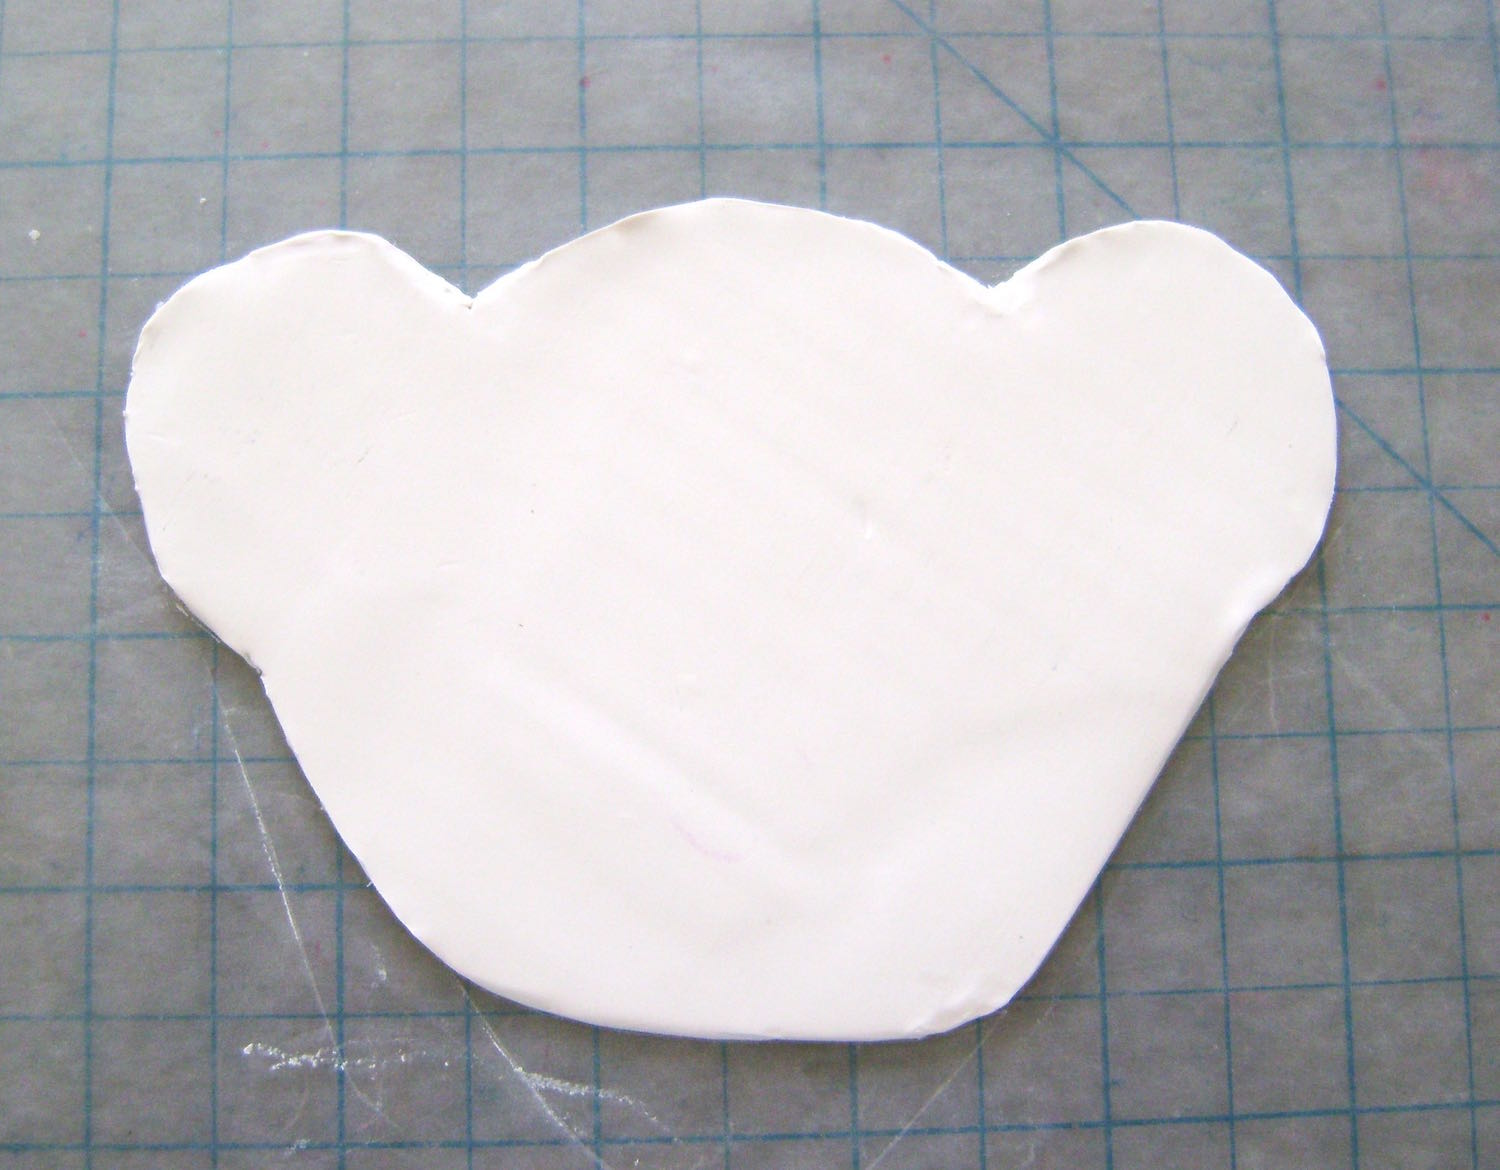 step 3 - Position the head template on the clay and cut it out using a craft knife. Cut out all the remaining pieces.